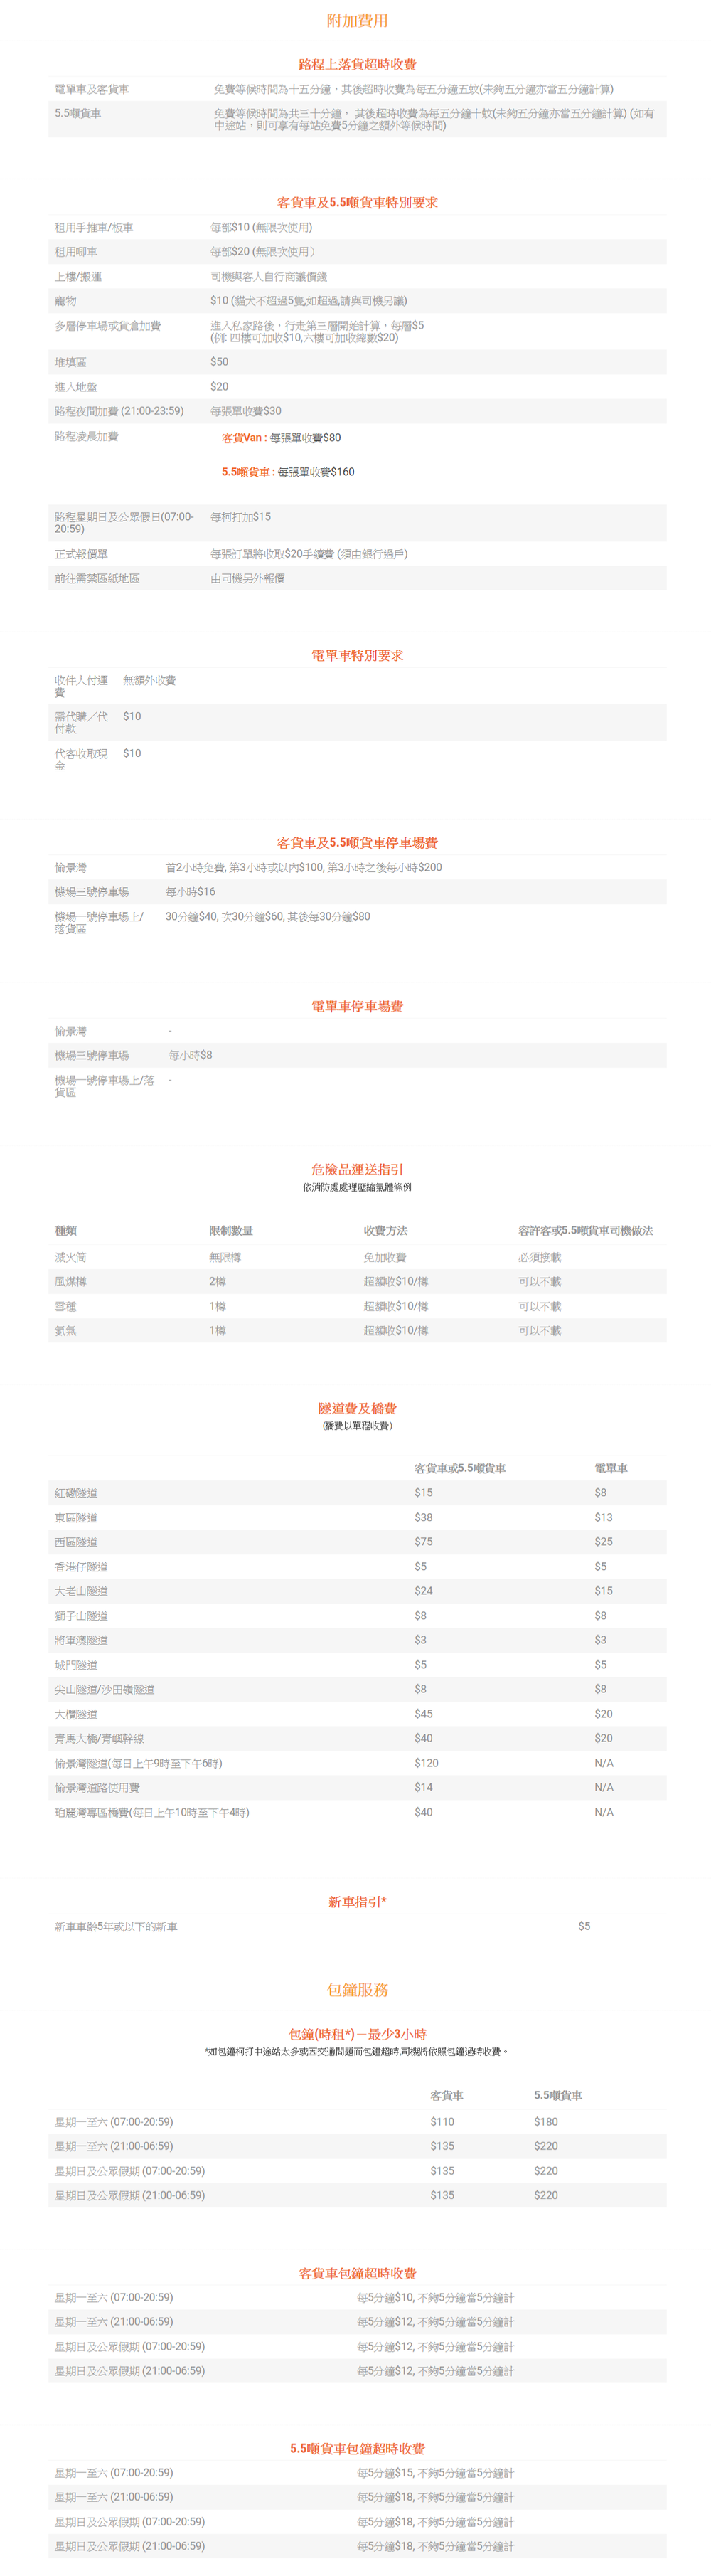 FireShot Capture 15 - 收費表 I Lalamove (Easy_ - https___www.lalamove.com_hk-chi_easyvan-business-price.png